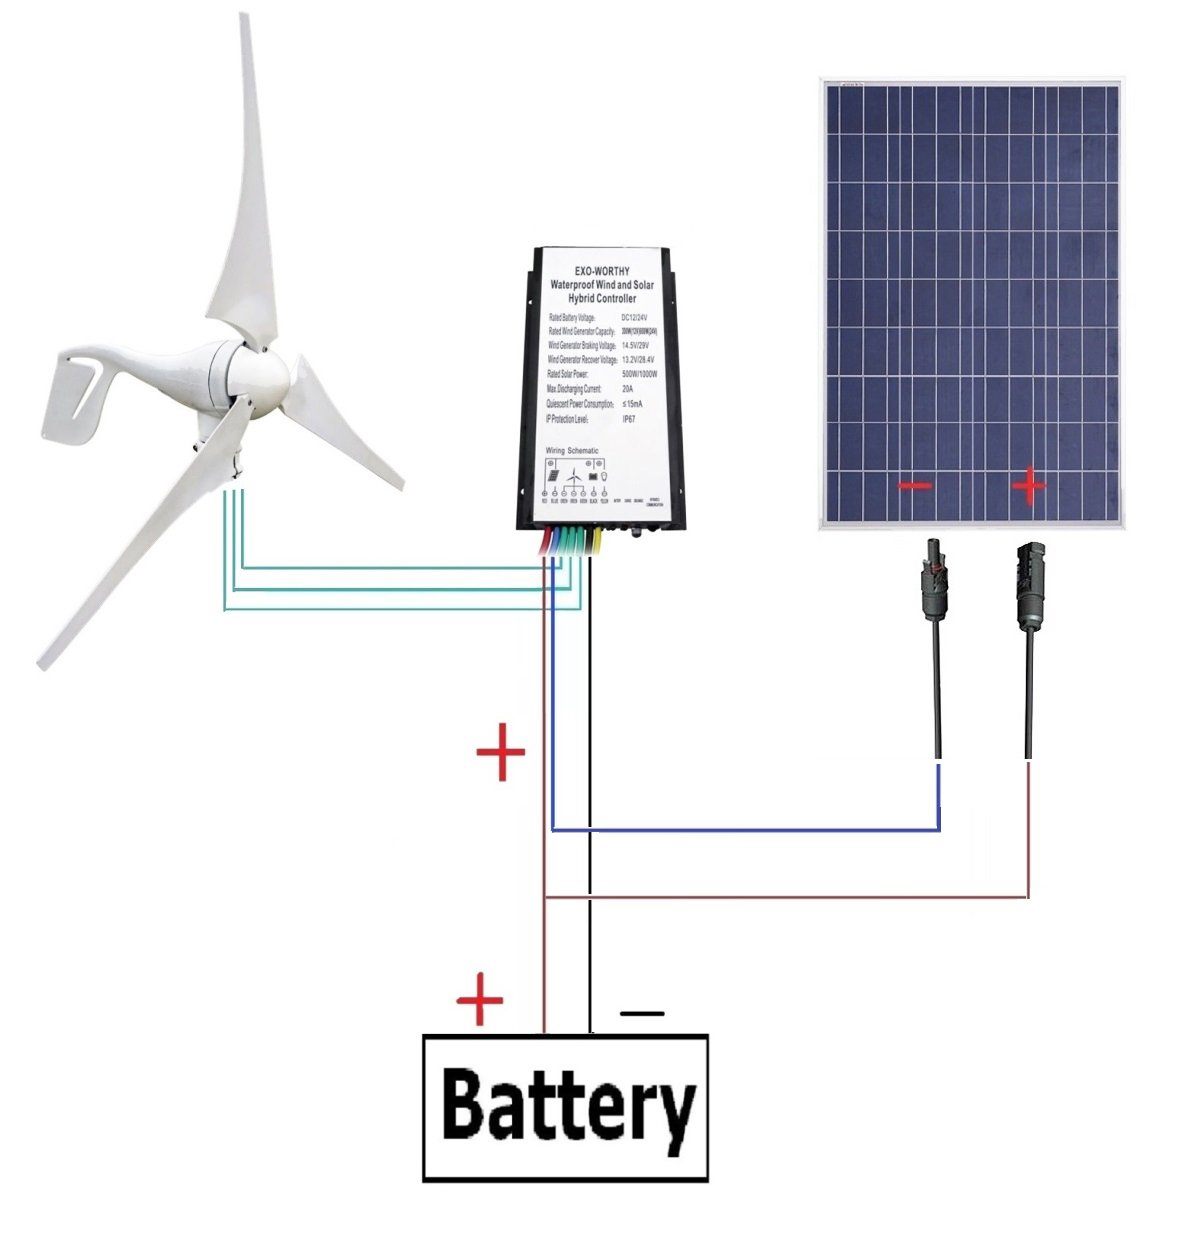 Hybrid Solar Power Wiring Diagram Reveolution Of Micro Switch In Addition Ps2 Controller Amazon Com Eco Worthy 400w Wind Turbine Generator 100w Rh 12 Volt Camper